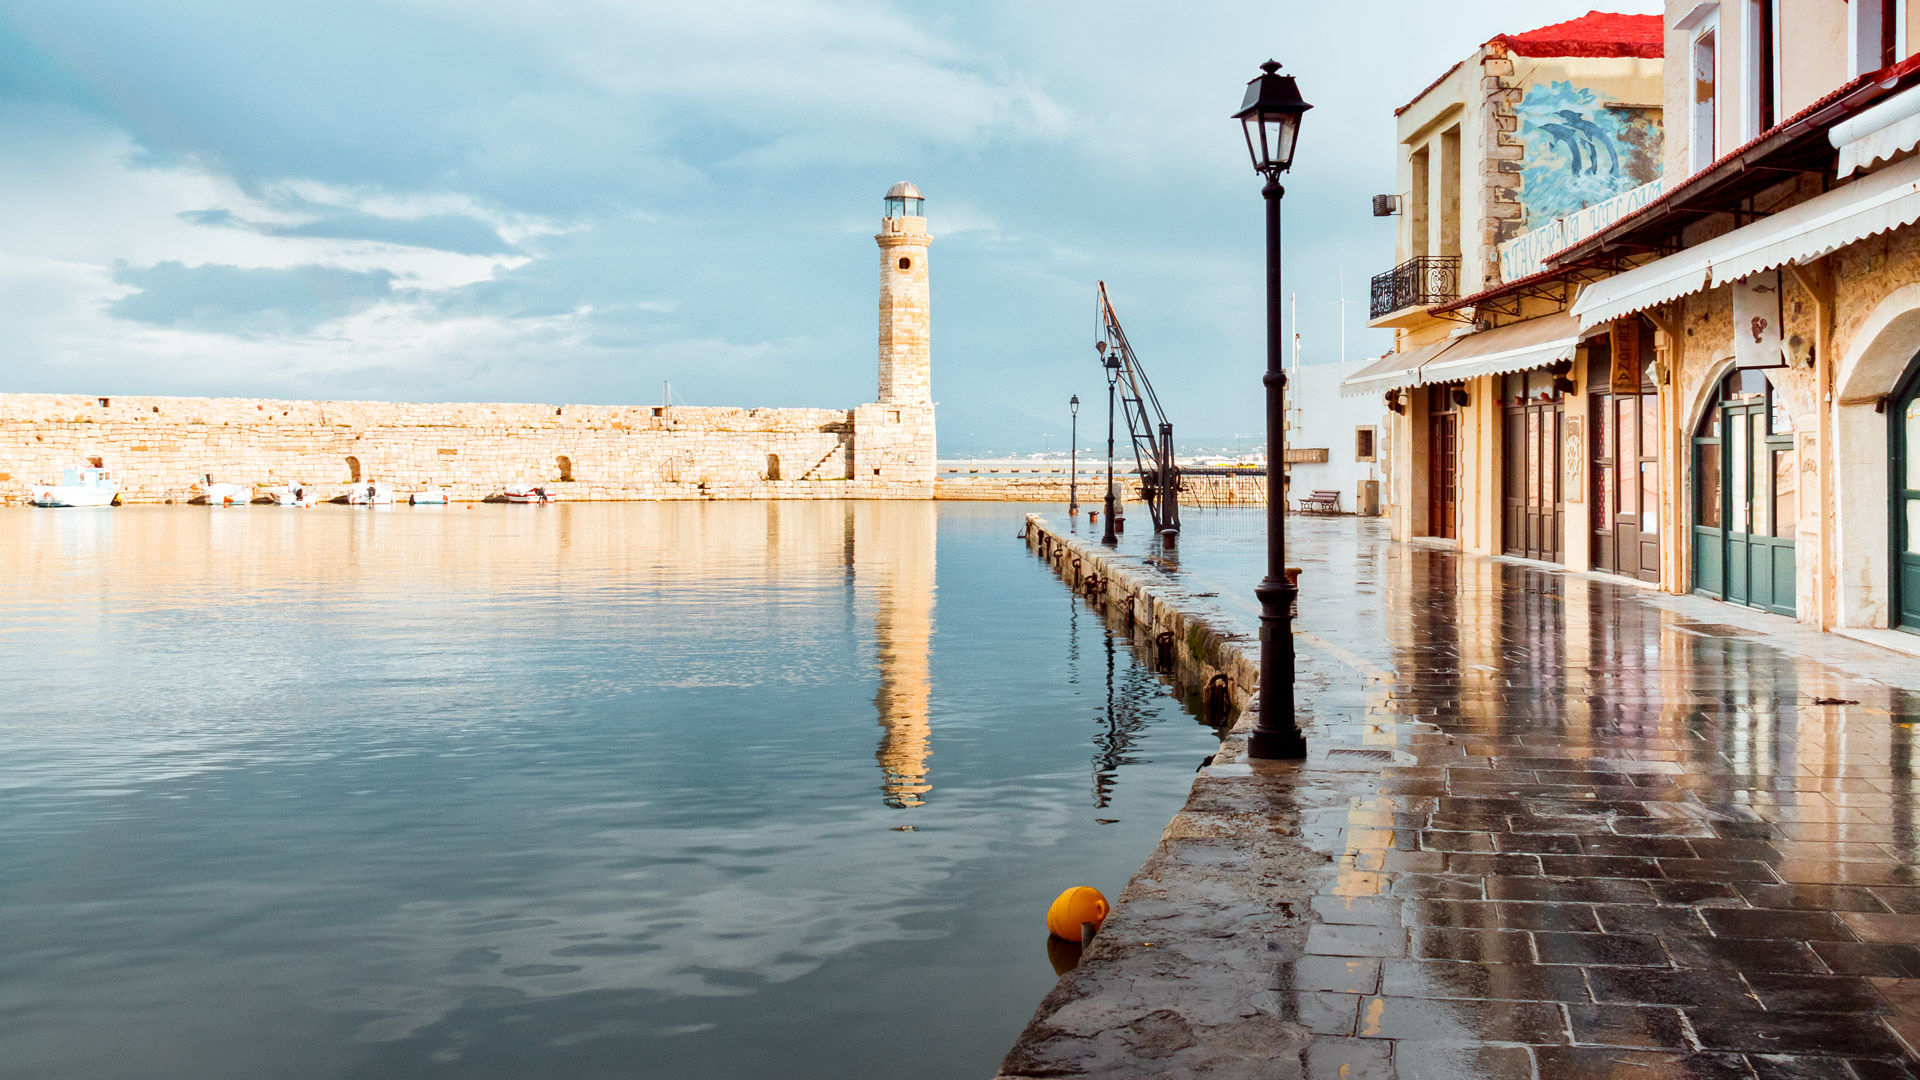 The Venetian harbour and the lighthouse in Rethymno